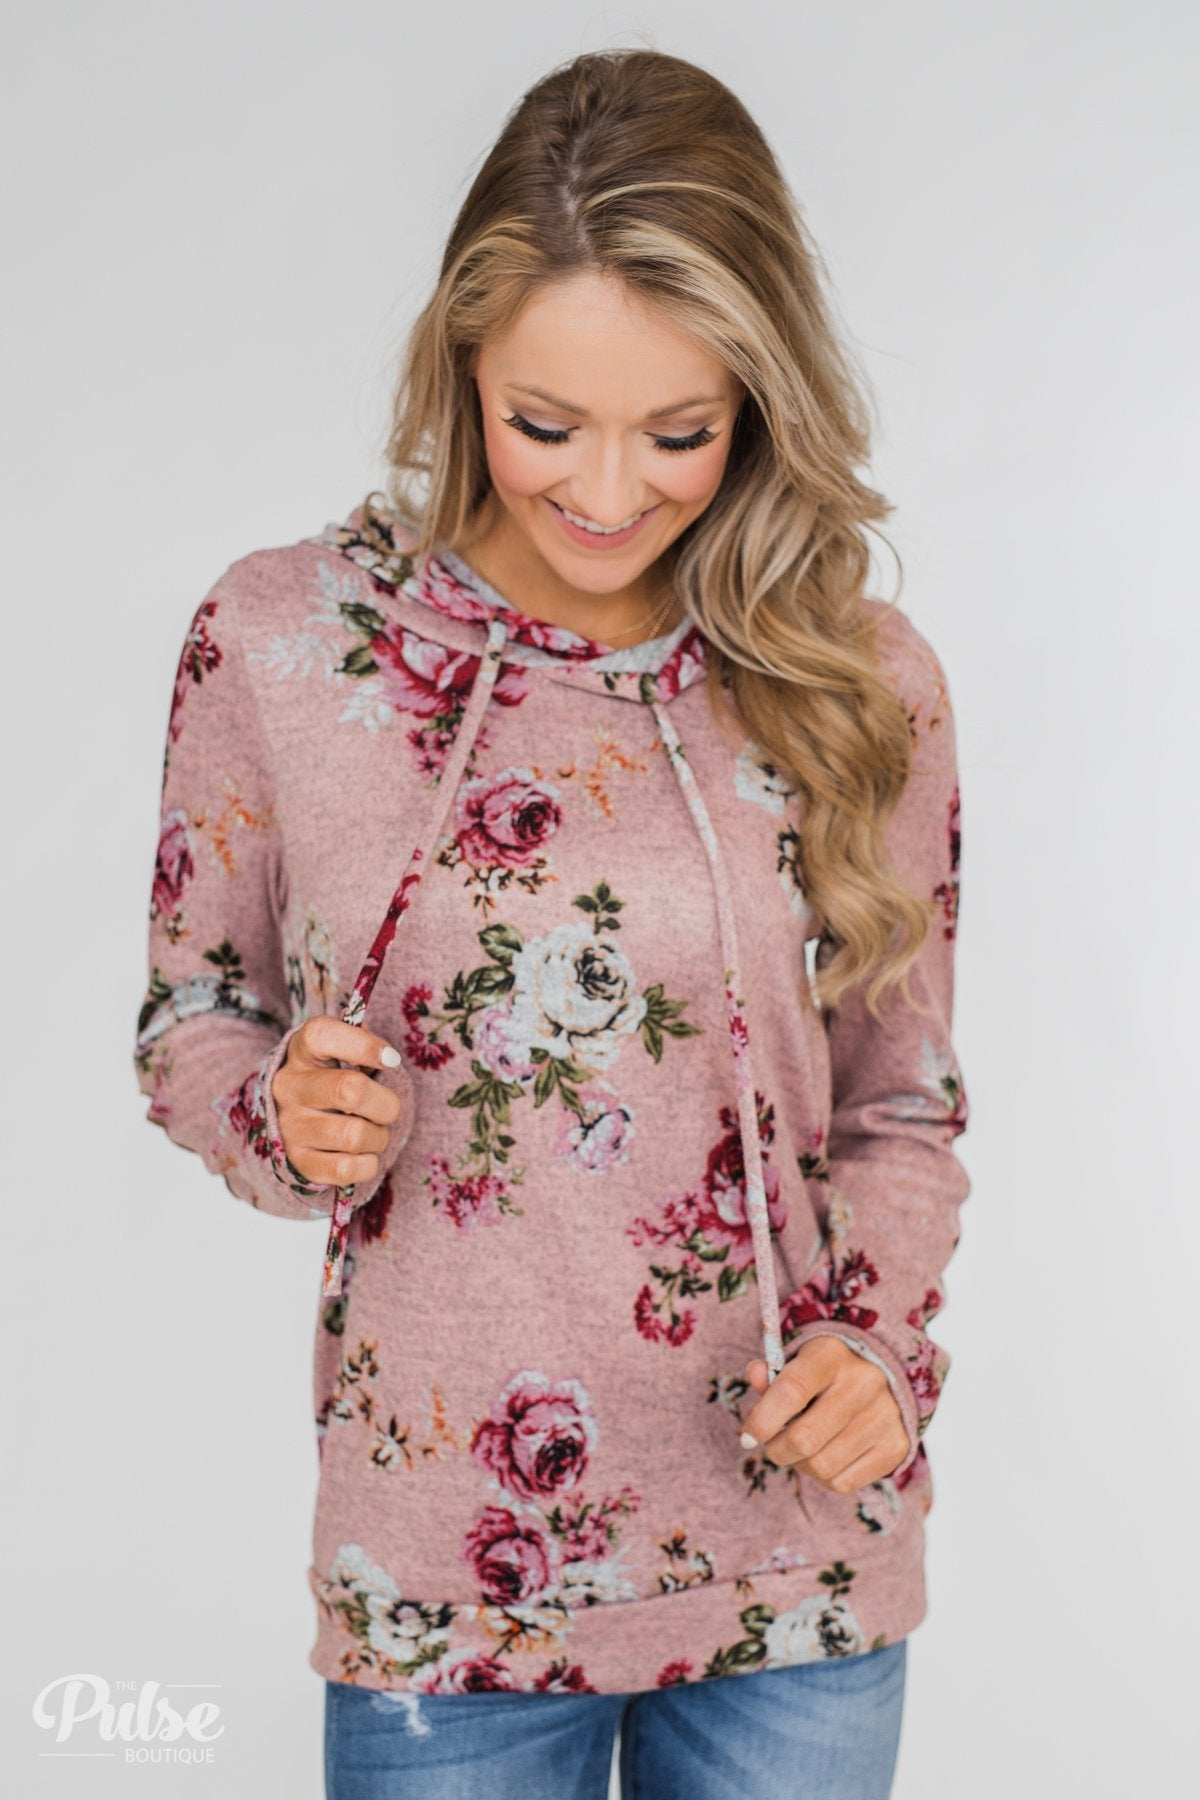 Catching Your Eye Floral Elbow Patch Hoodie- Pink